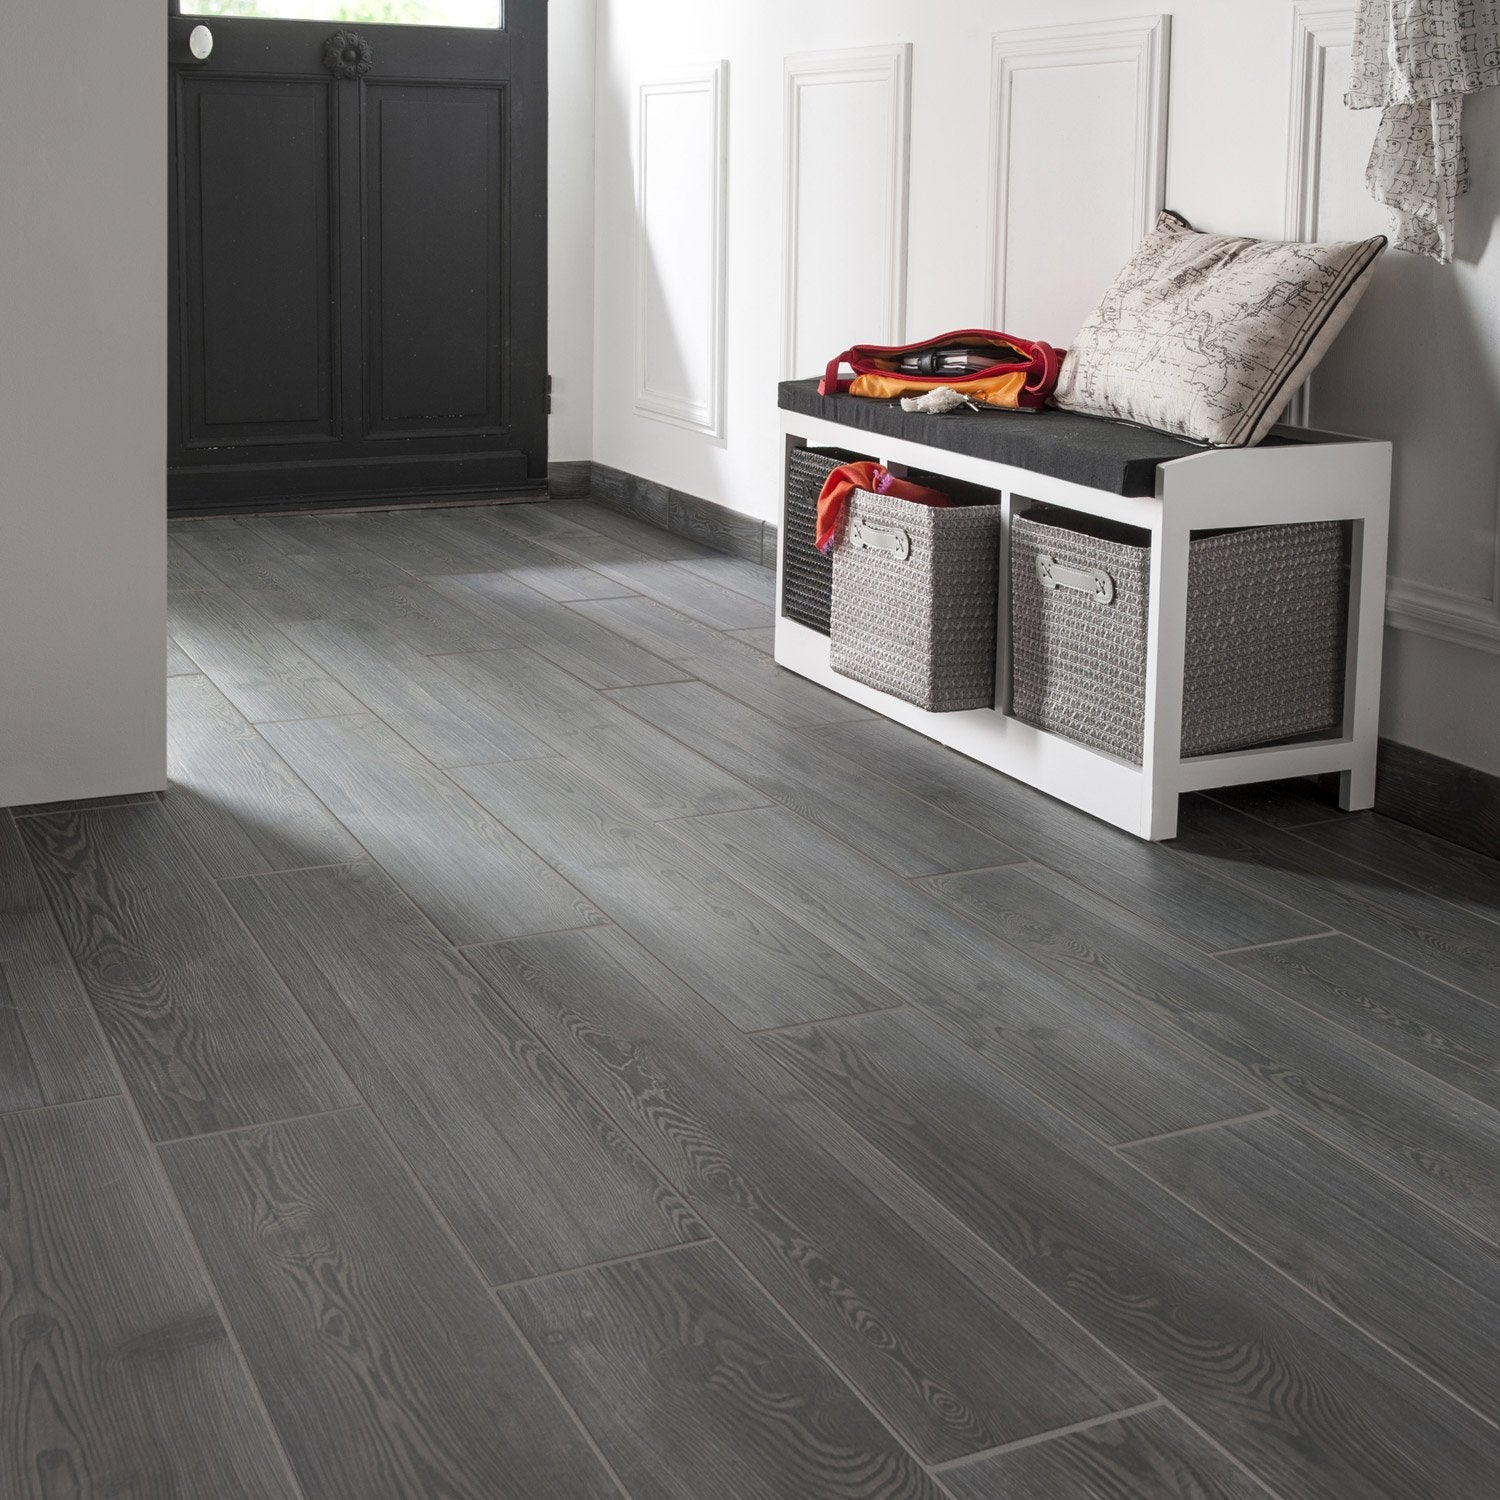 Carrelage imitation parquet gris anthracite photos de for Carrelage sol gris anthracite